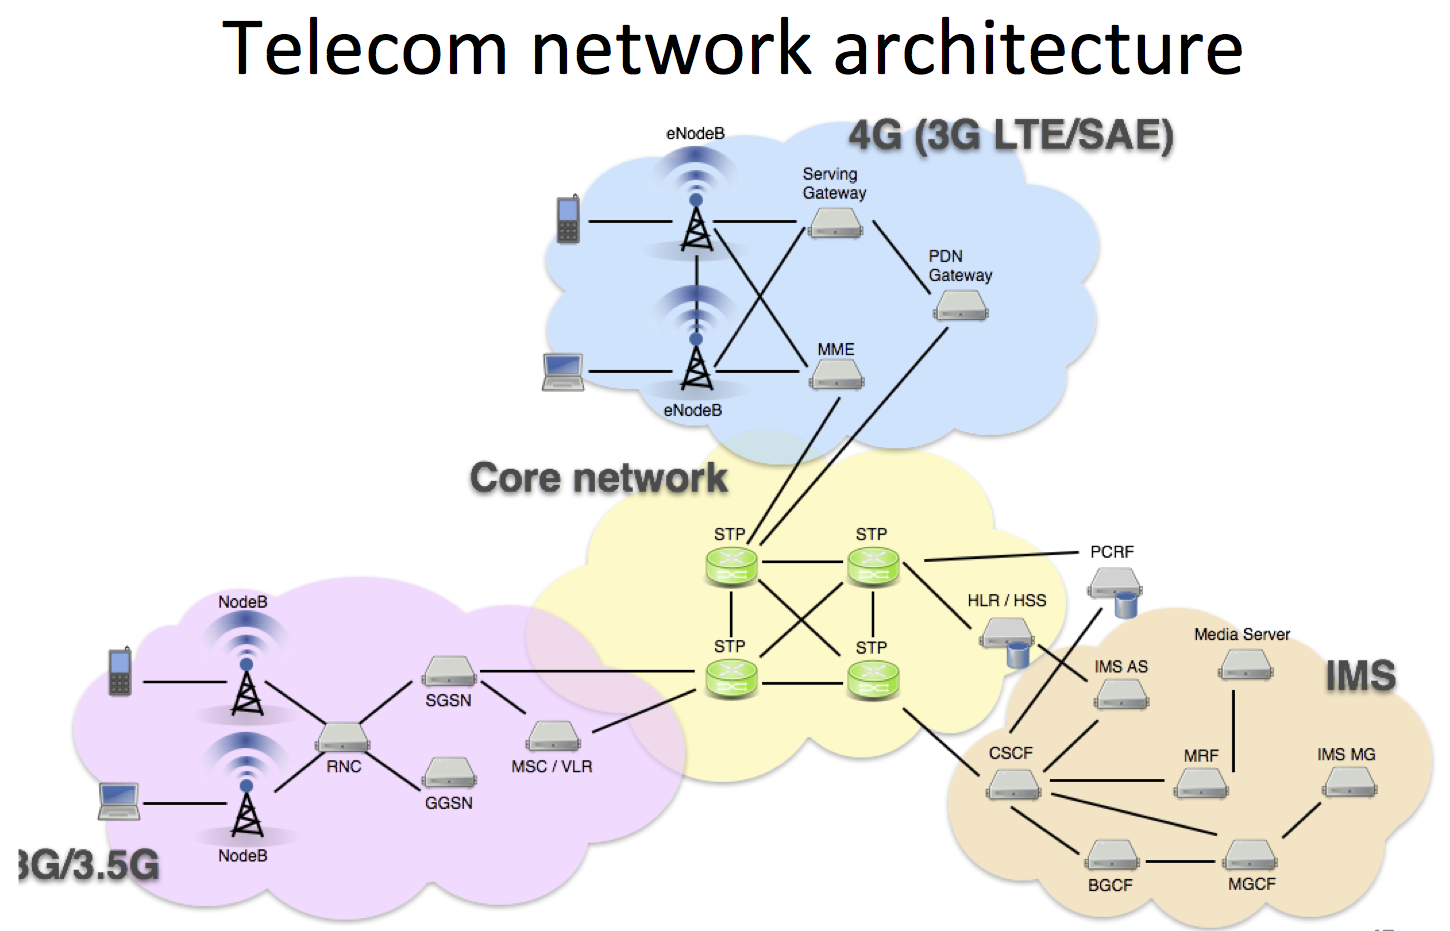 The network architecture of a typical mobile network operator. Telecom